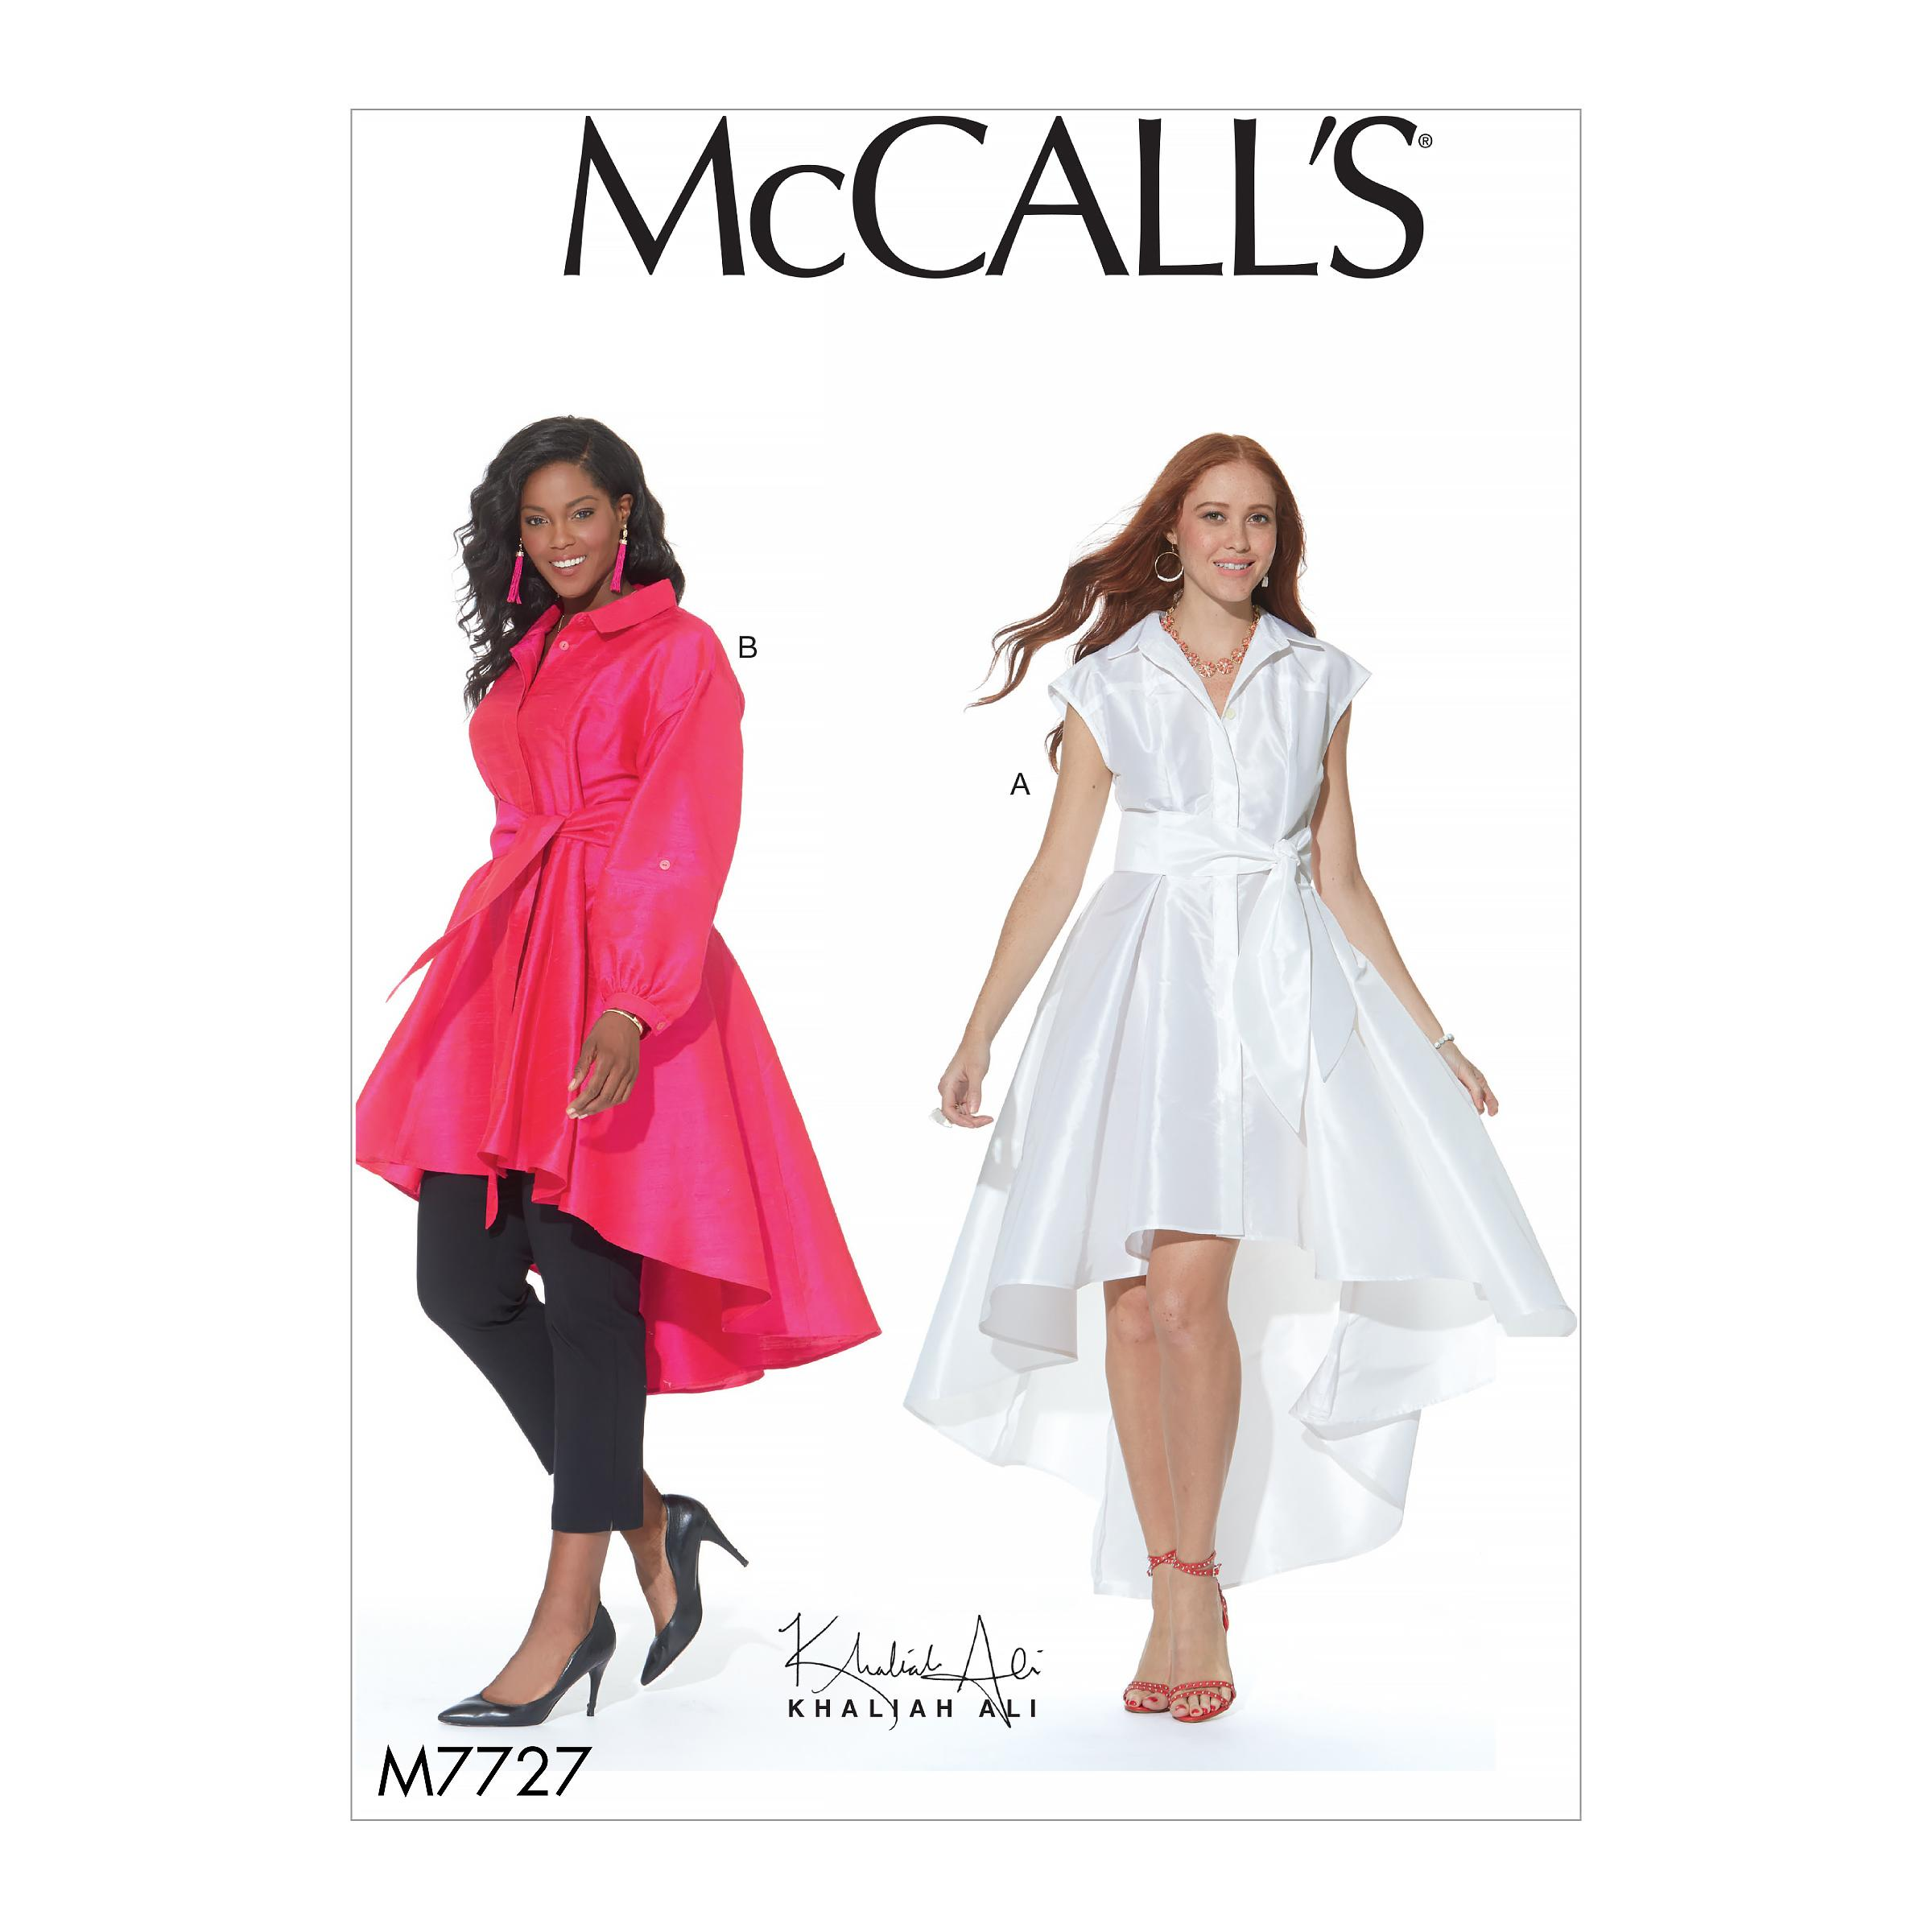 McCalls M7727 Misses Dresses, Misses Tops, Misses Prom, Evening & Bridal